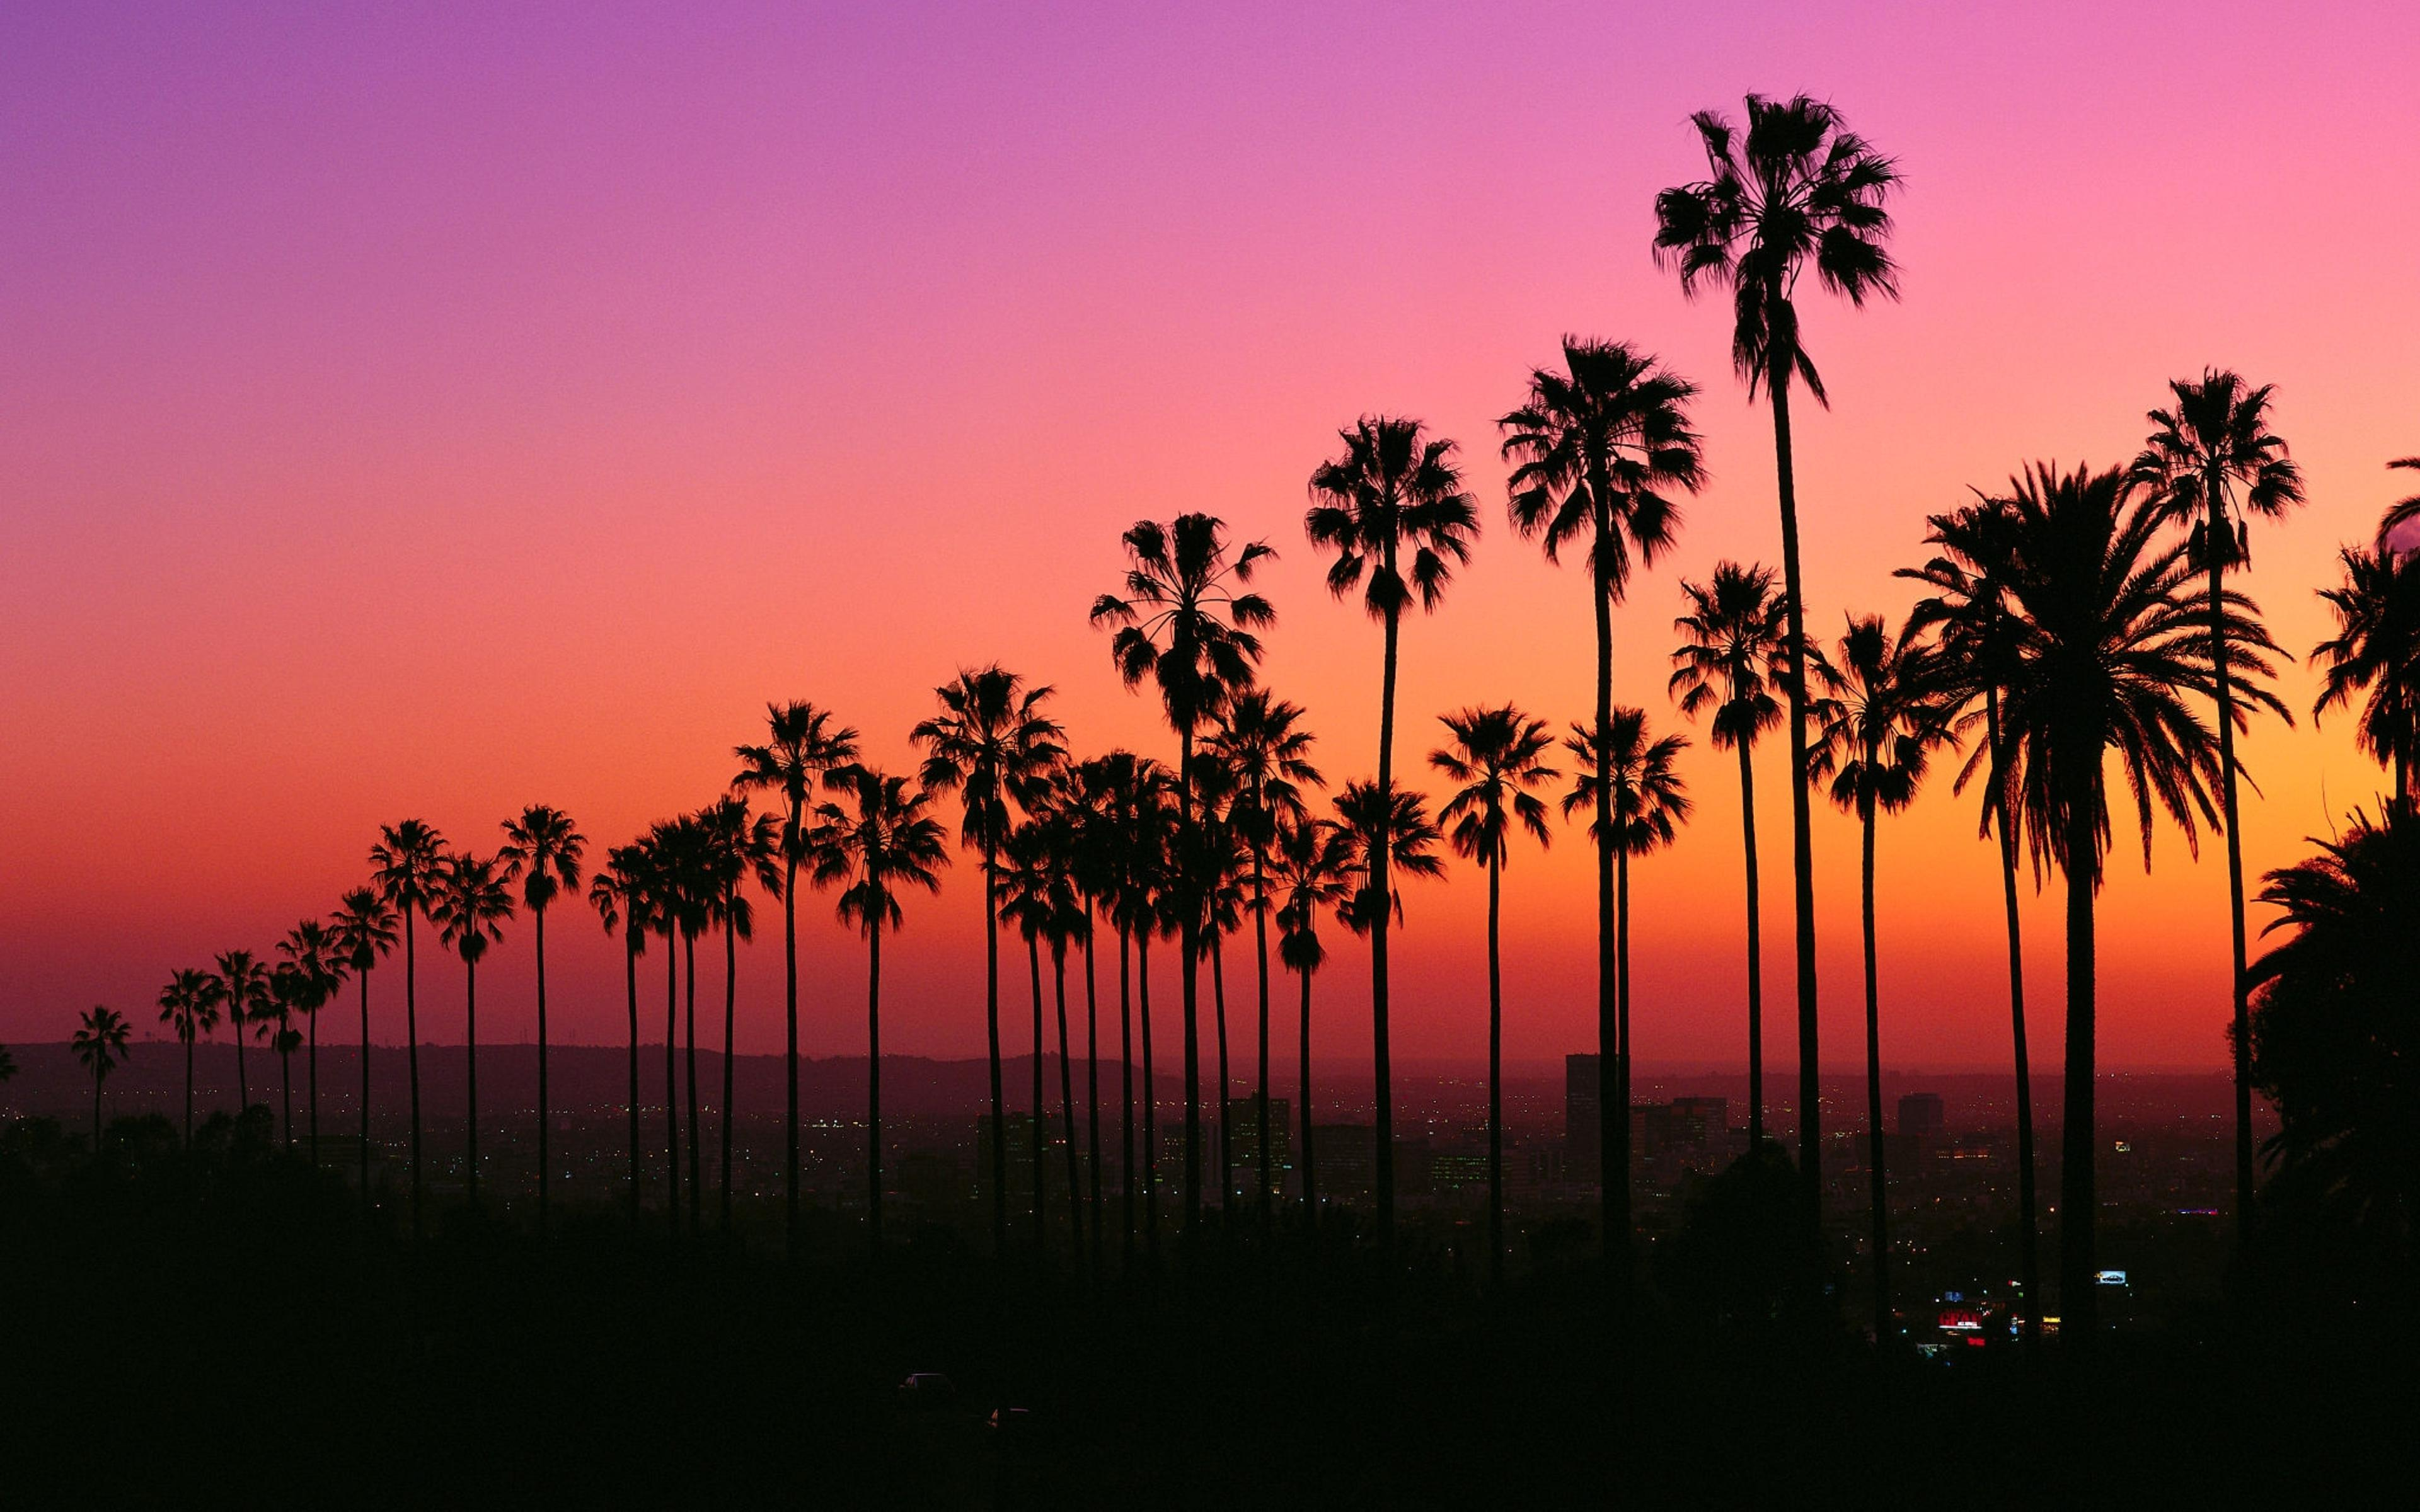 Los Angeles Sunset Wallpapers Top Free Los Angeles Sunset Backgrounds Wallpaperaccess